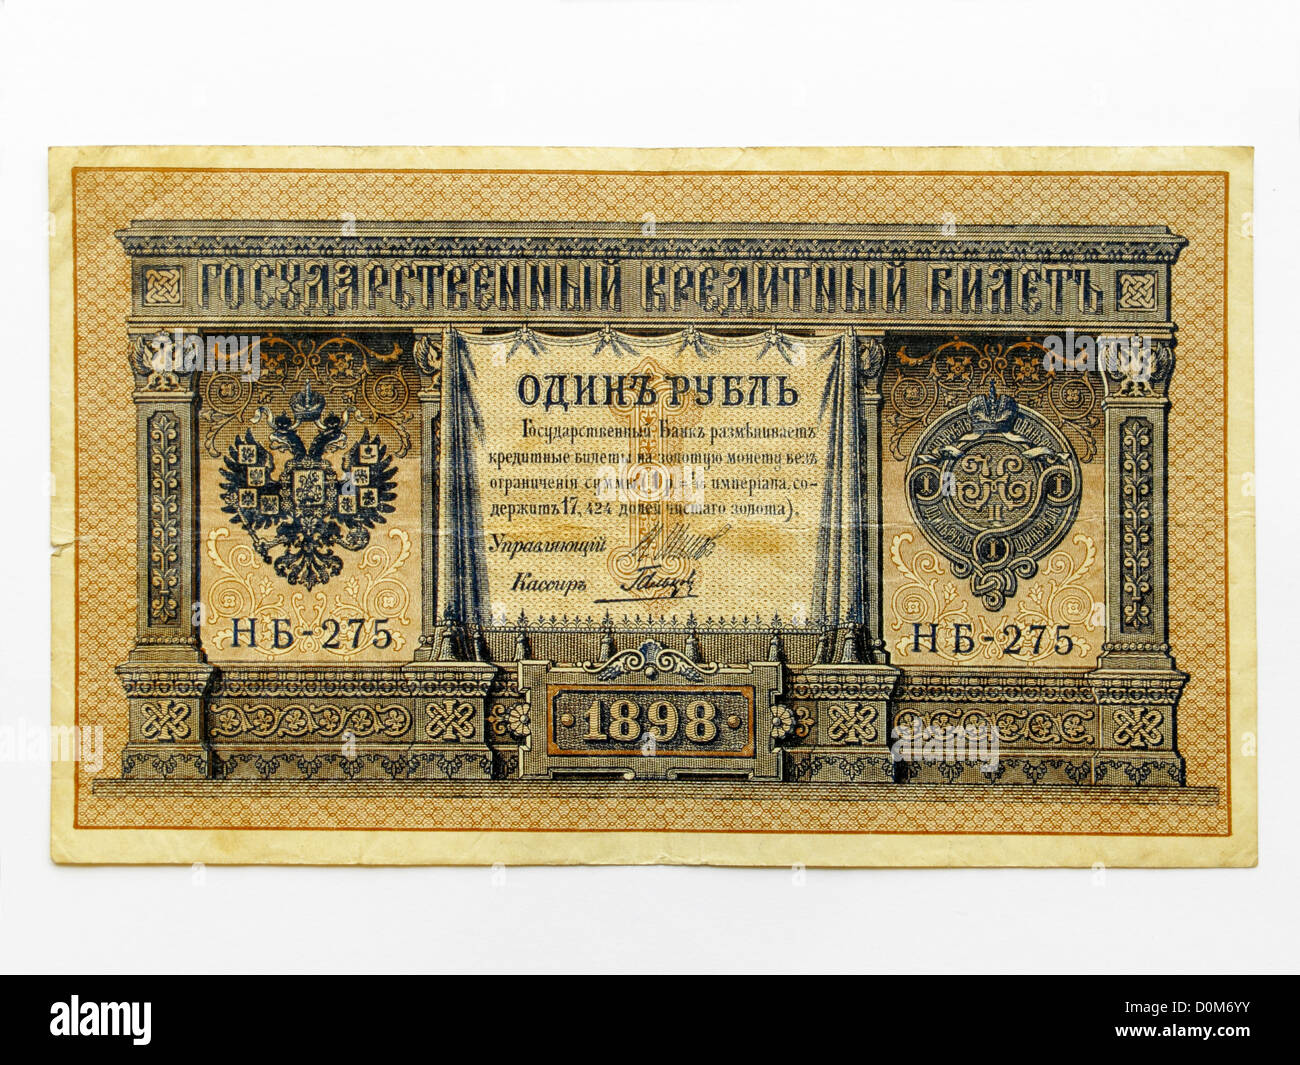 One Rouble Ruble Imperialist Russian banknote 1898 issue - Stock Image